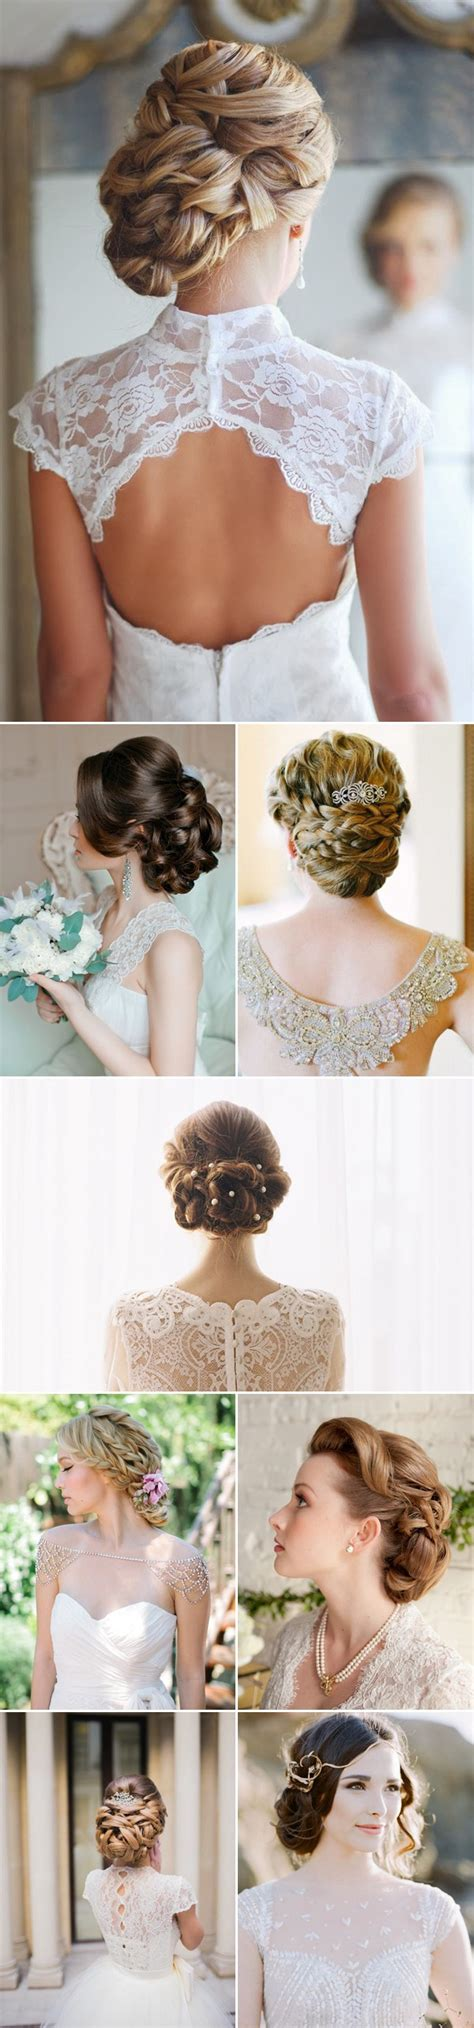 Wedding Hairstyles Hair Put Up by Wedding Hairstyles For Hair Put Up Hairstyles